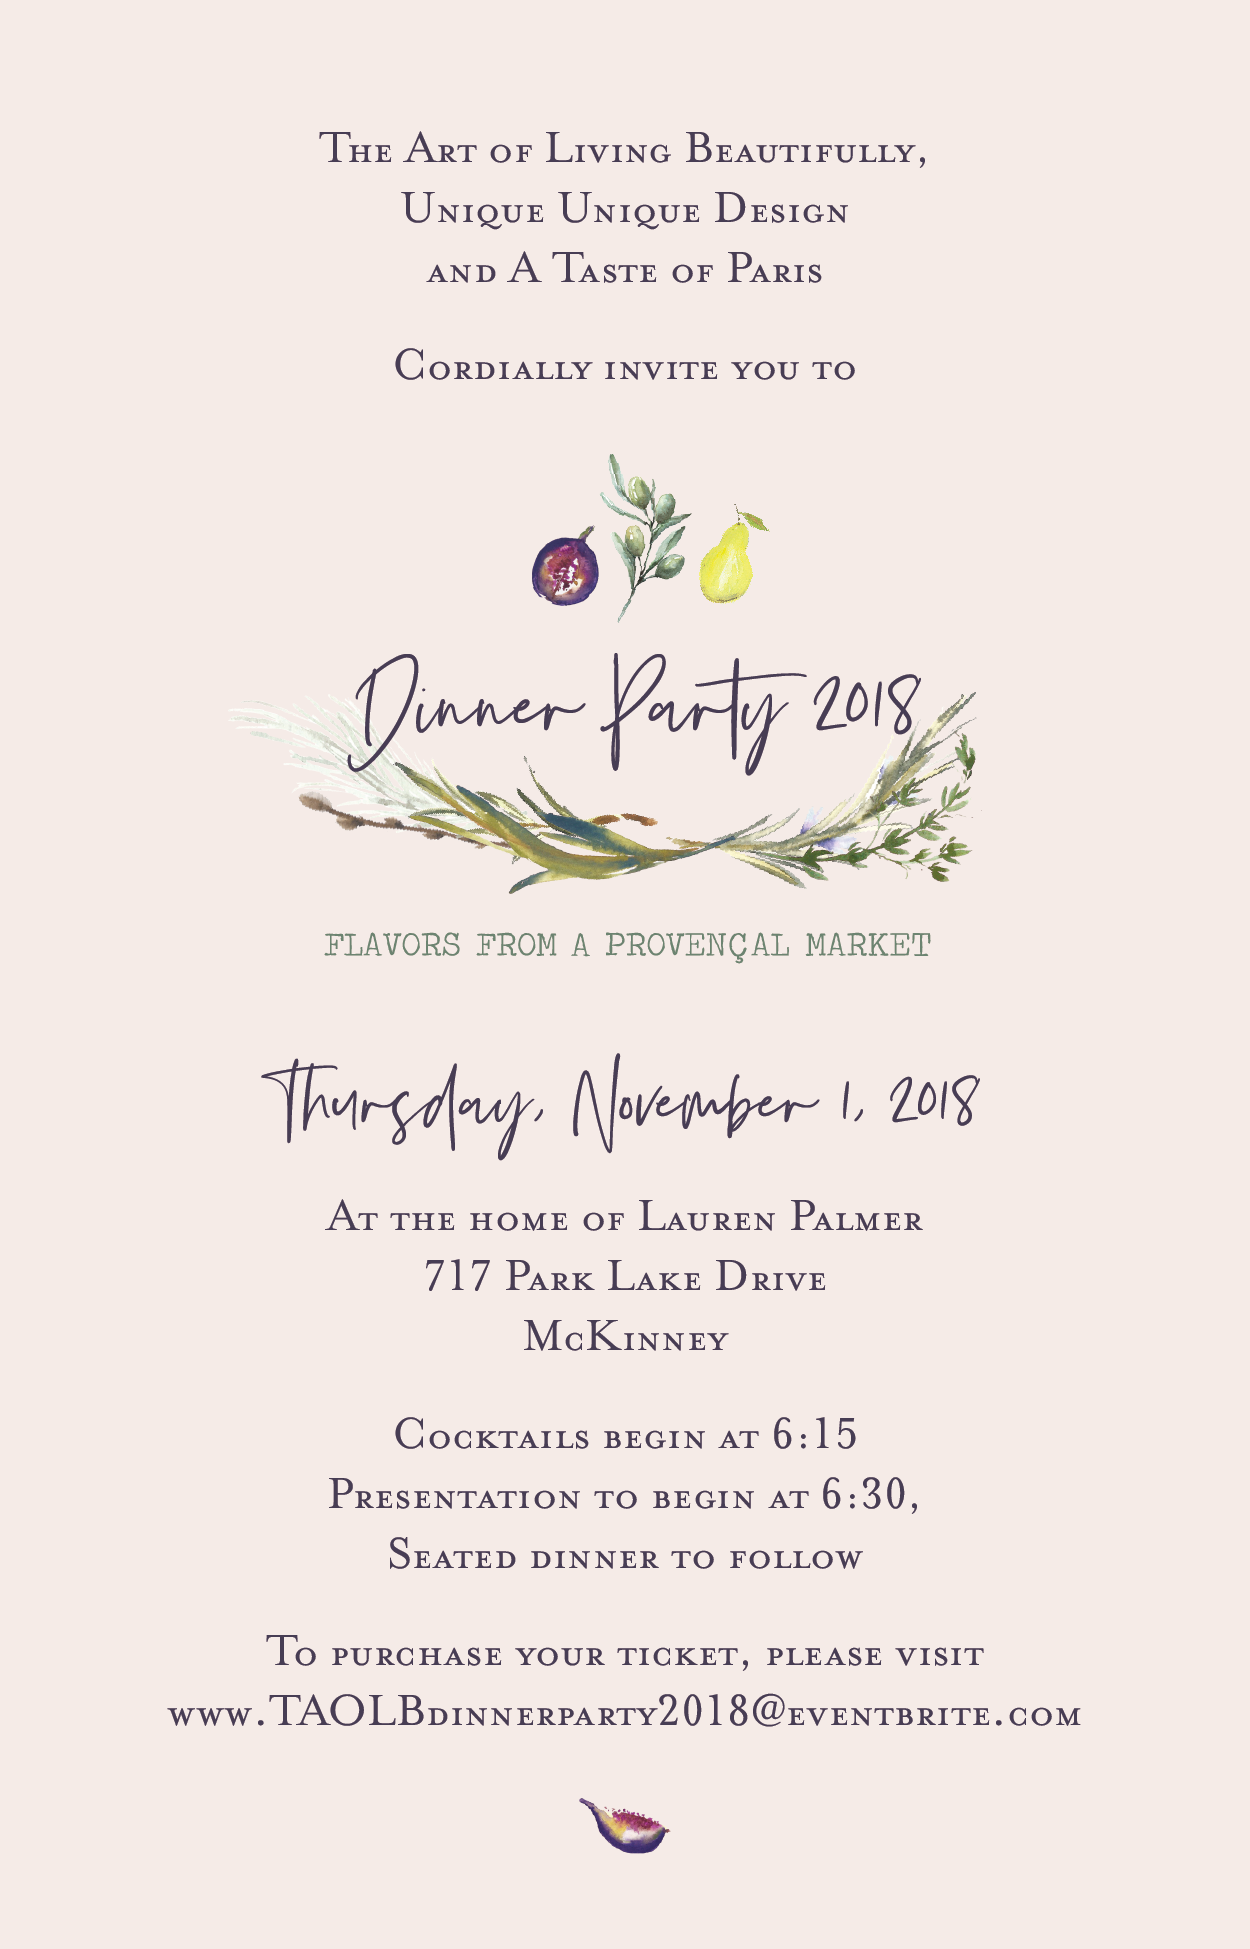 Lauren Palmer The Art of Living Beautifully Fall Dinner Party Invitation A-02.png